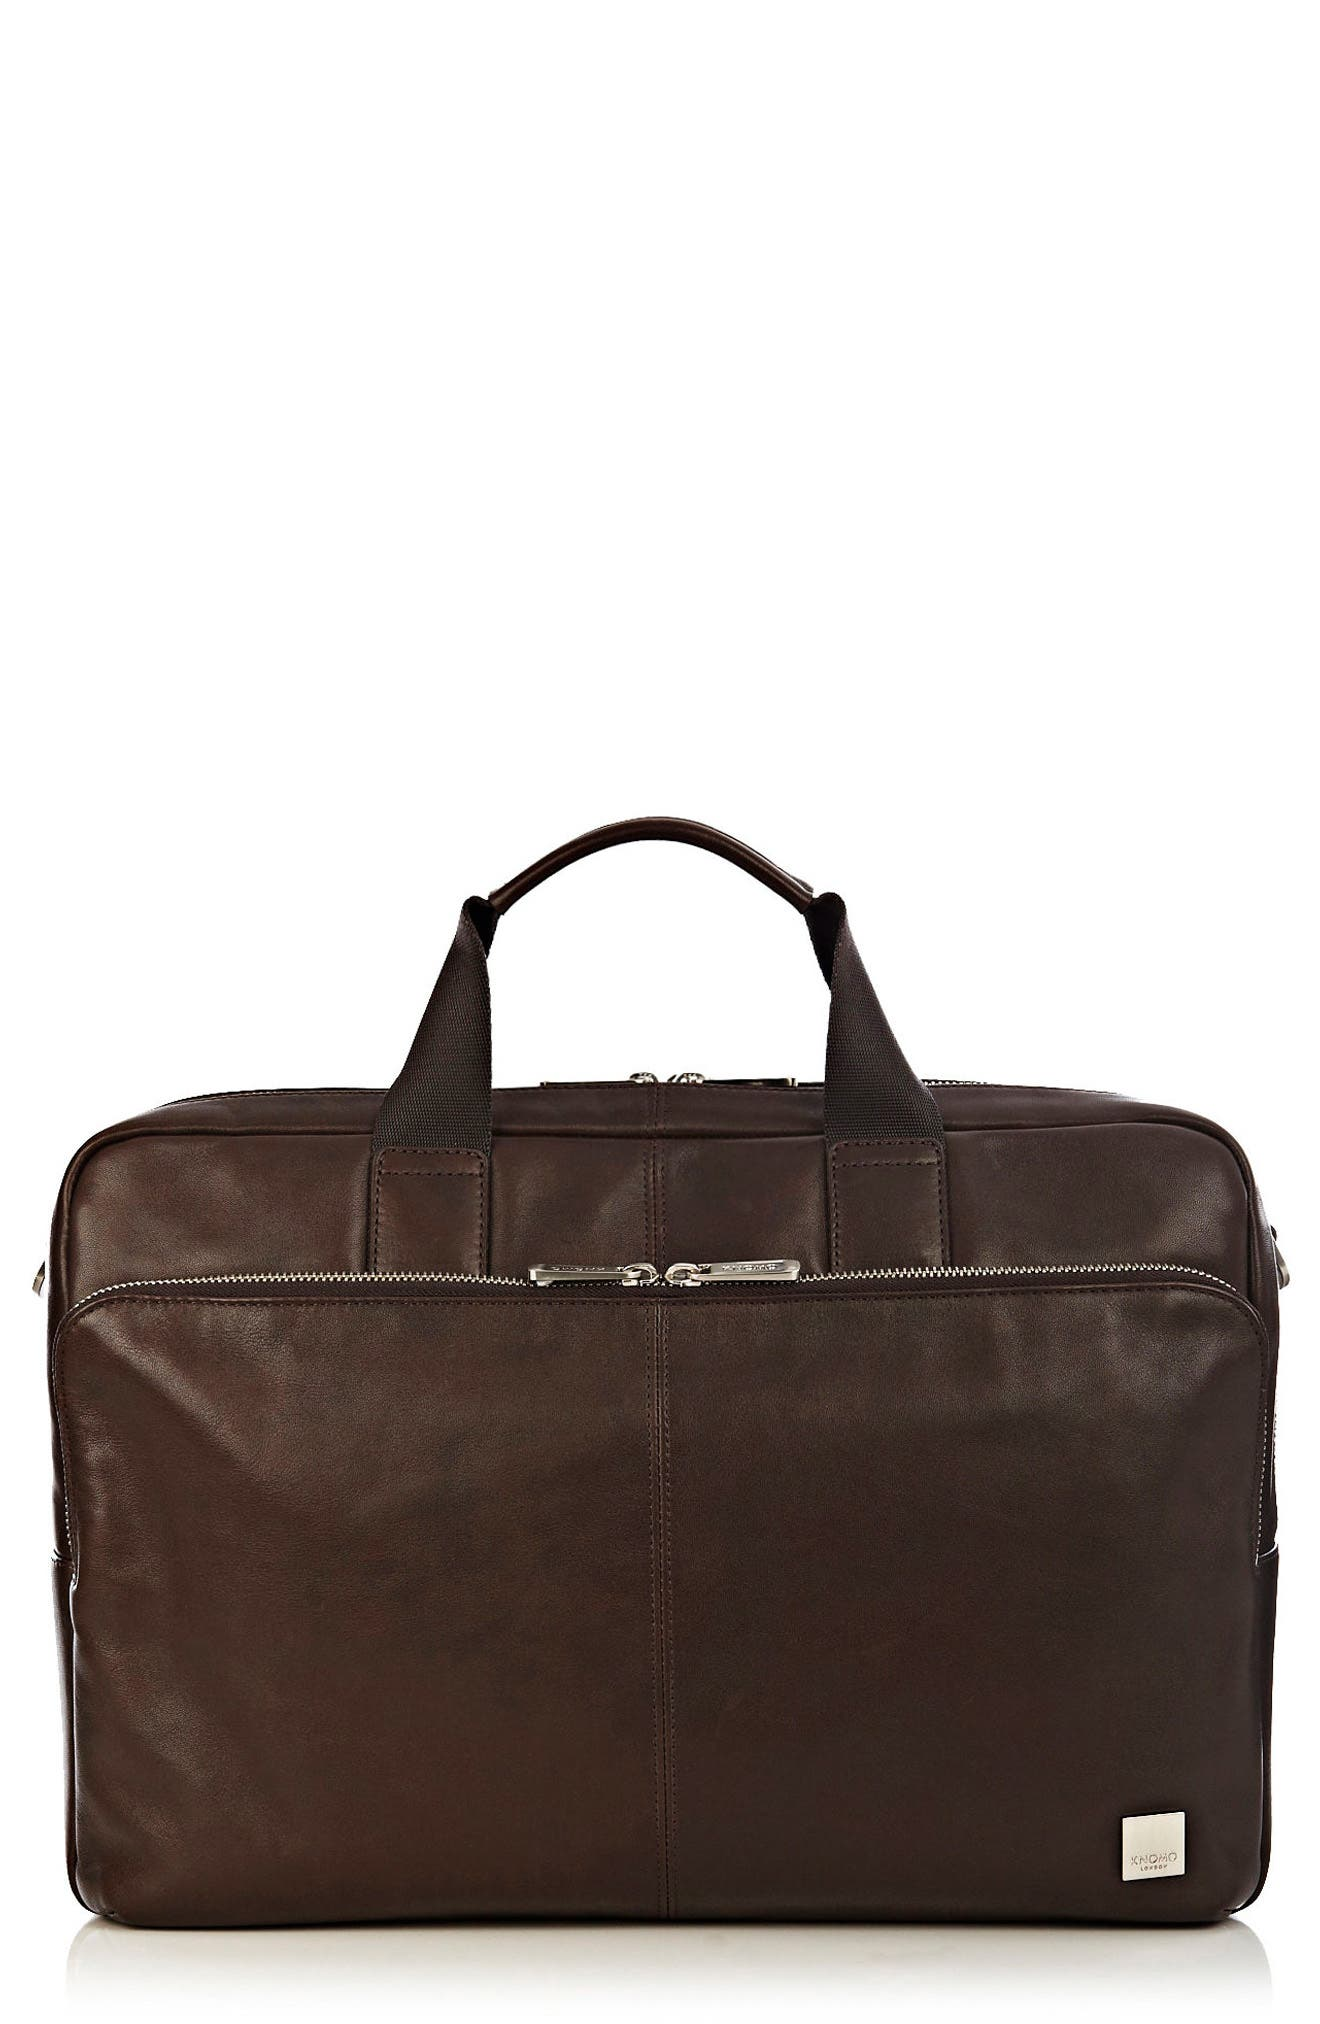 KNOMO LONDON Brompton Amesbury Leather Briefcase